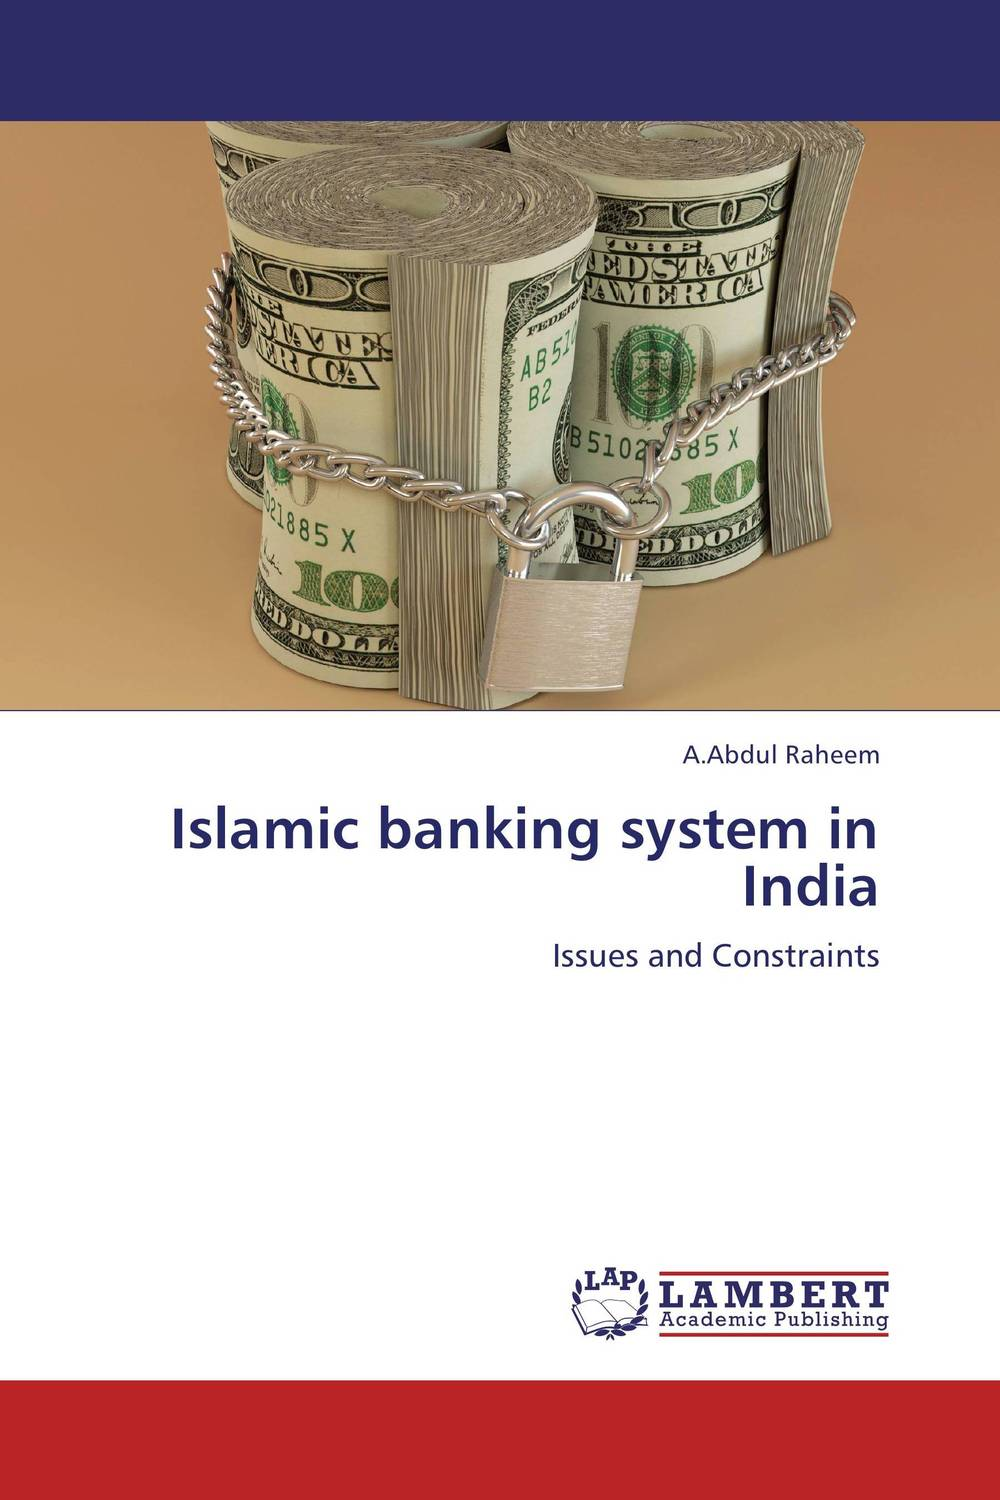 Islamic banking system in India the principles of islamic banking within a capitalist economy in sout